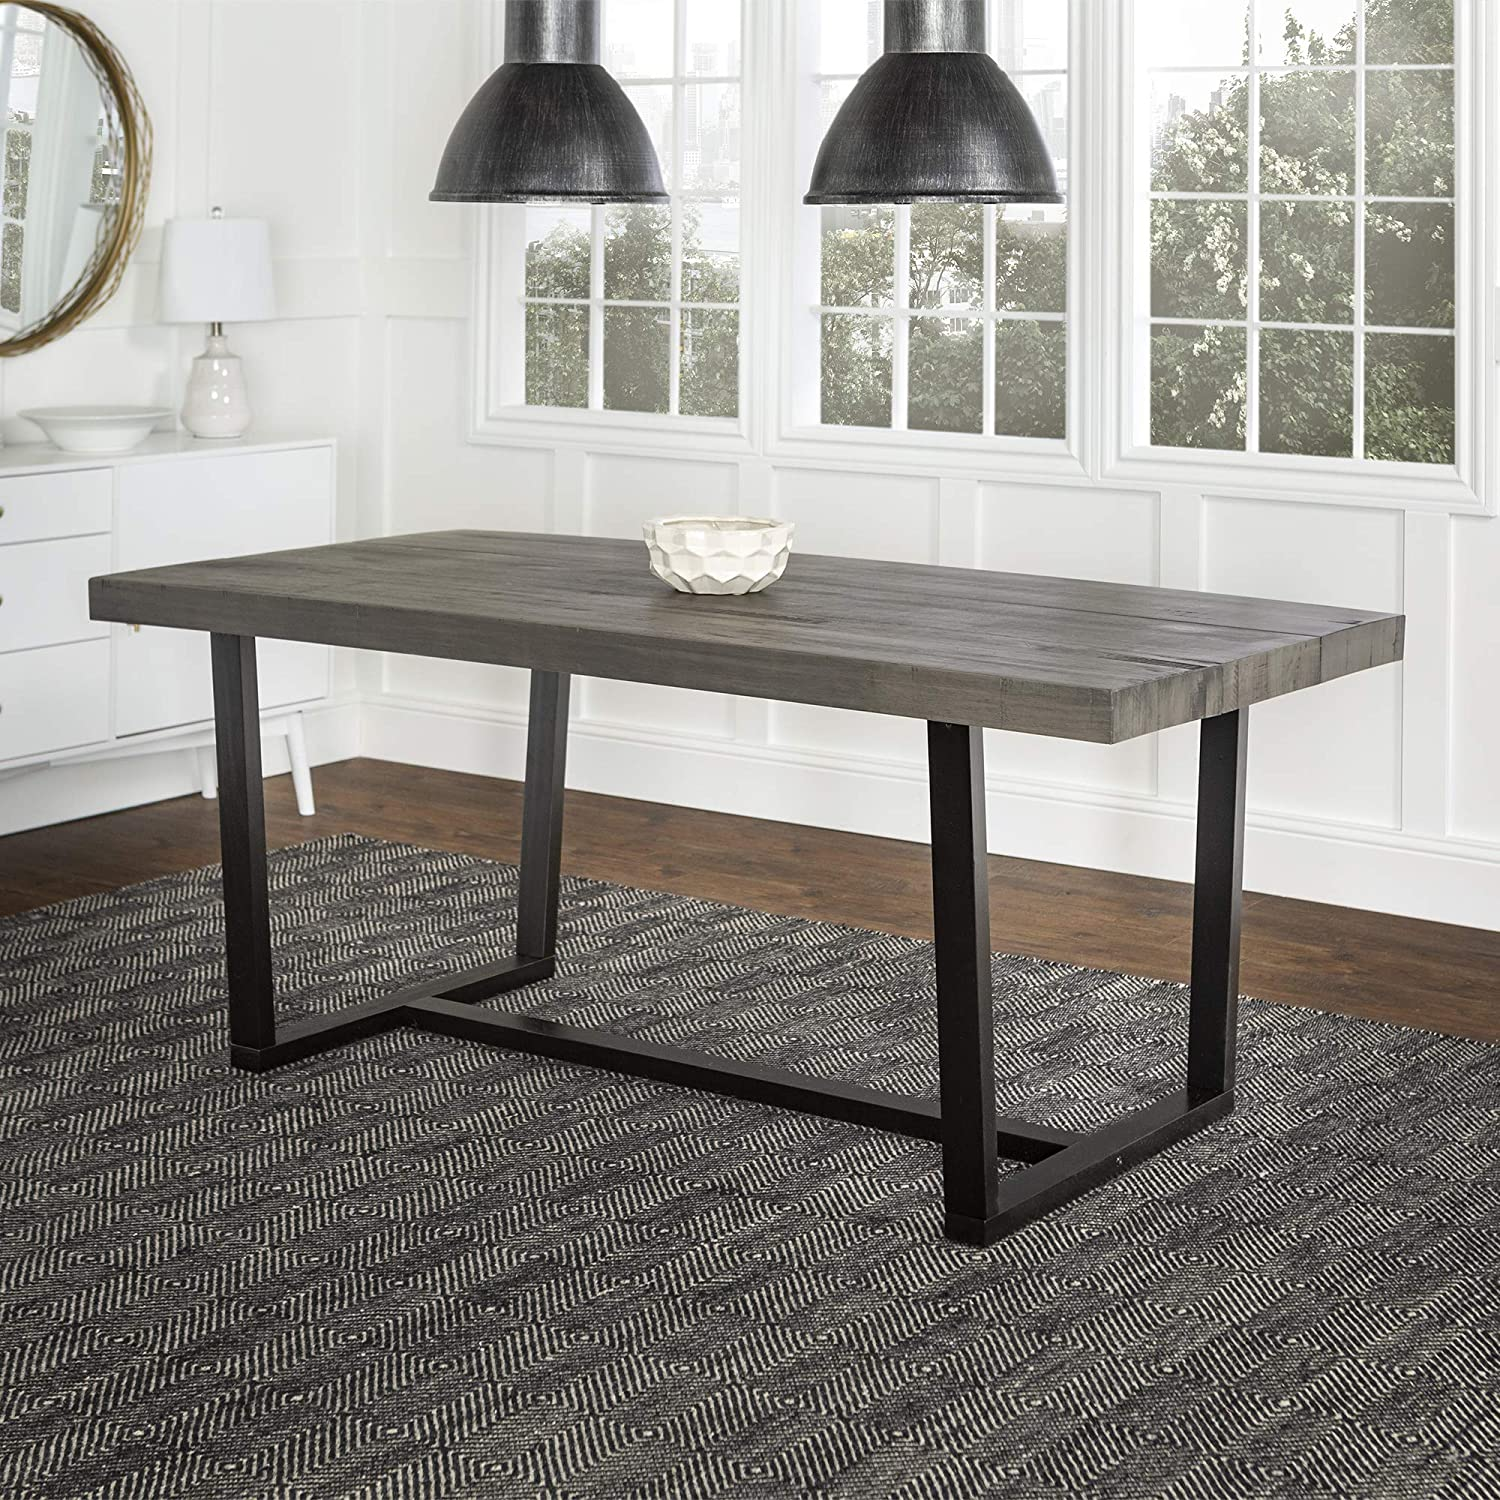 farmhouse-rectangular-dining-table-metal-base-black-finish-thick-wooden-72-inch-tabletop-modern-rustic-furniture-inspiration